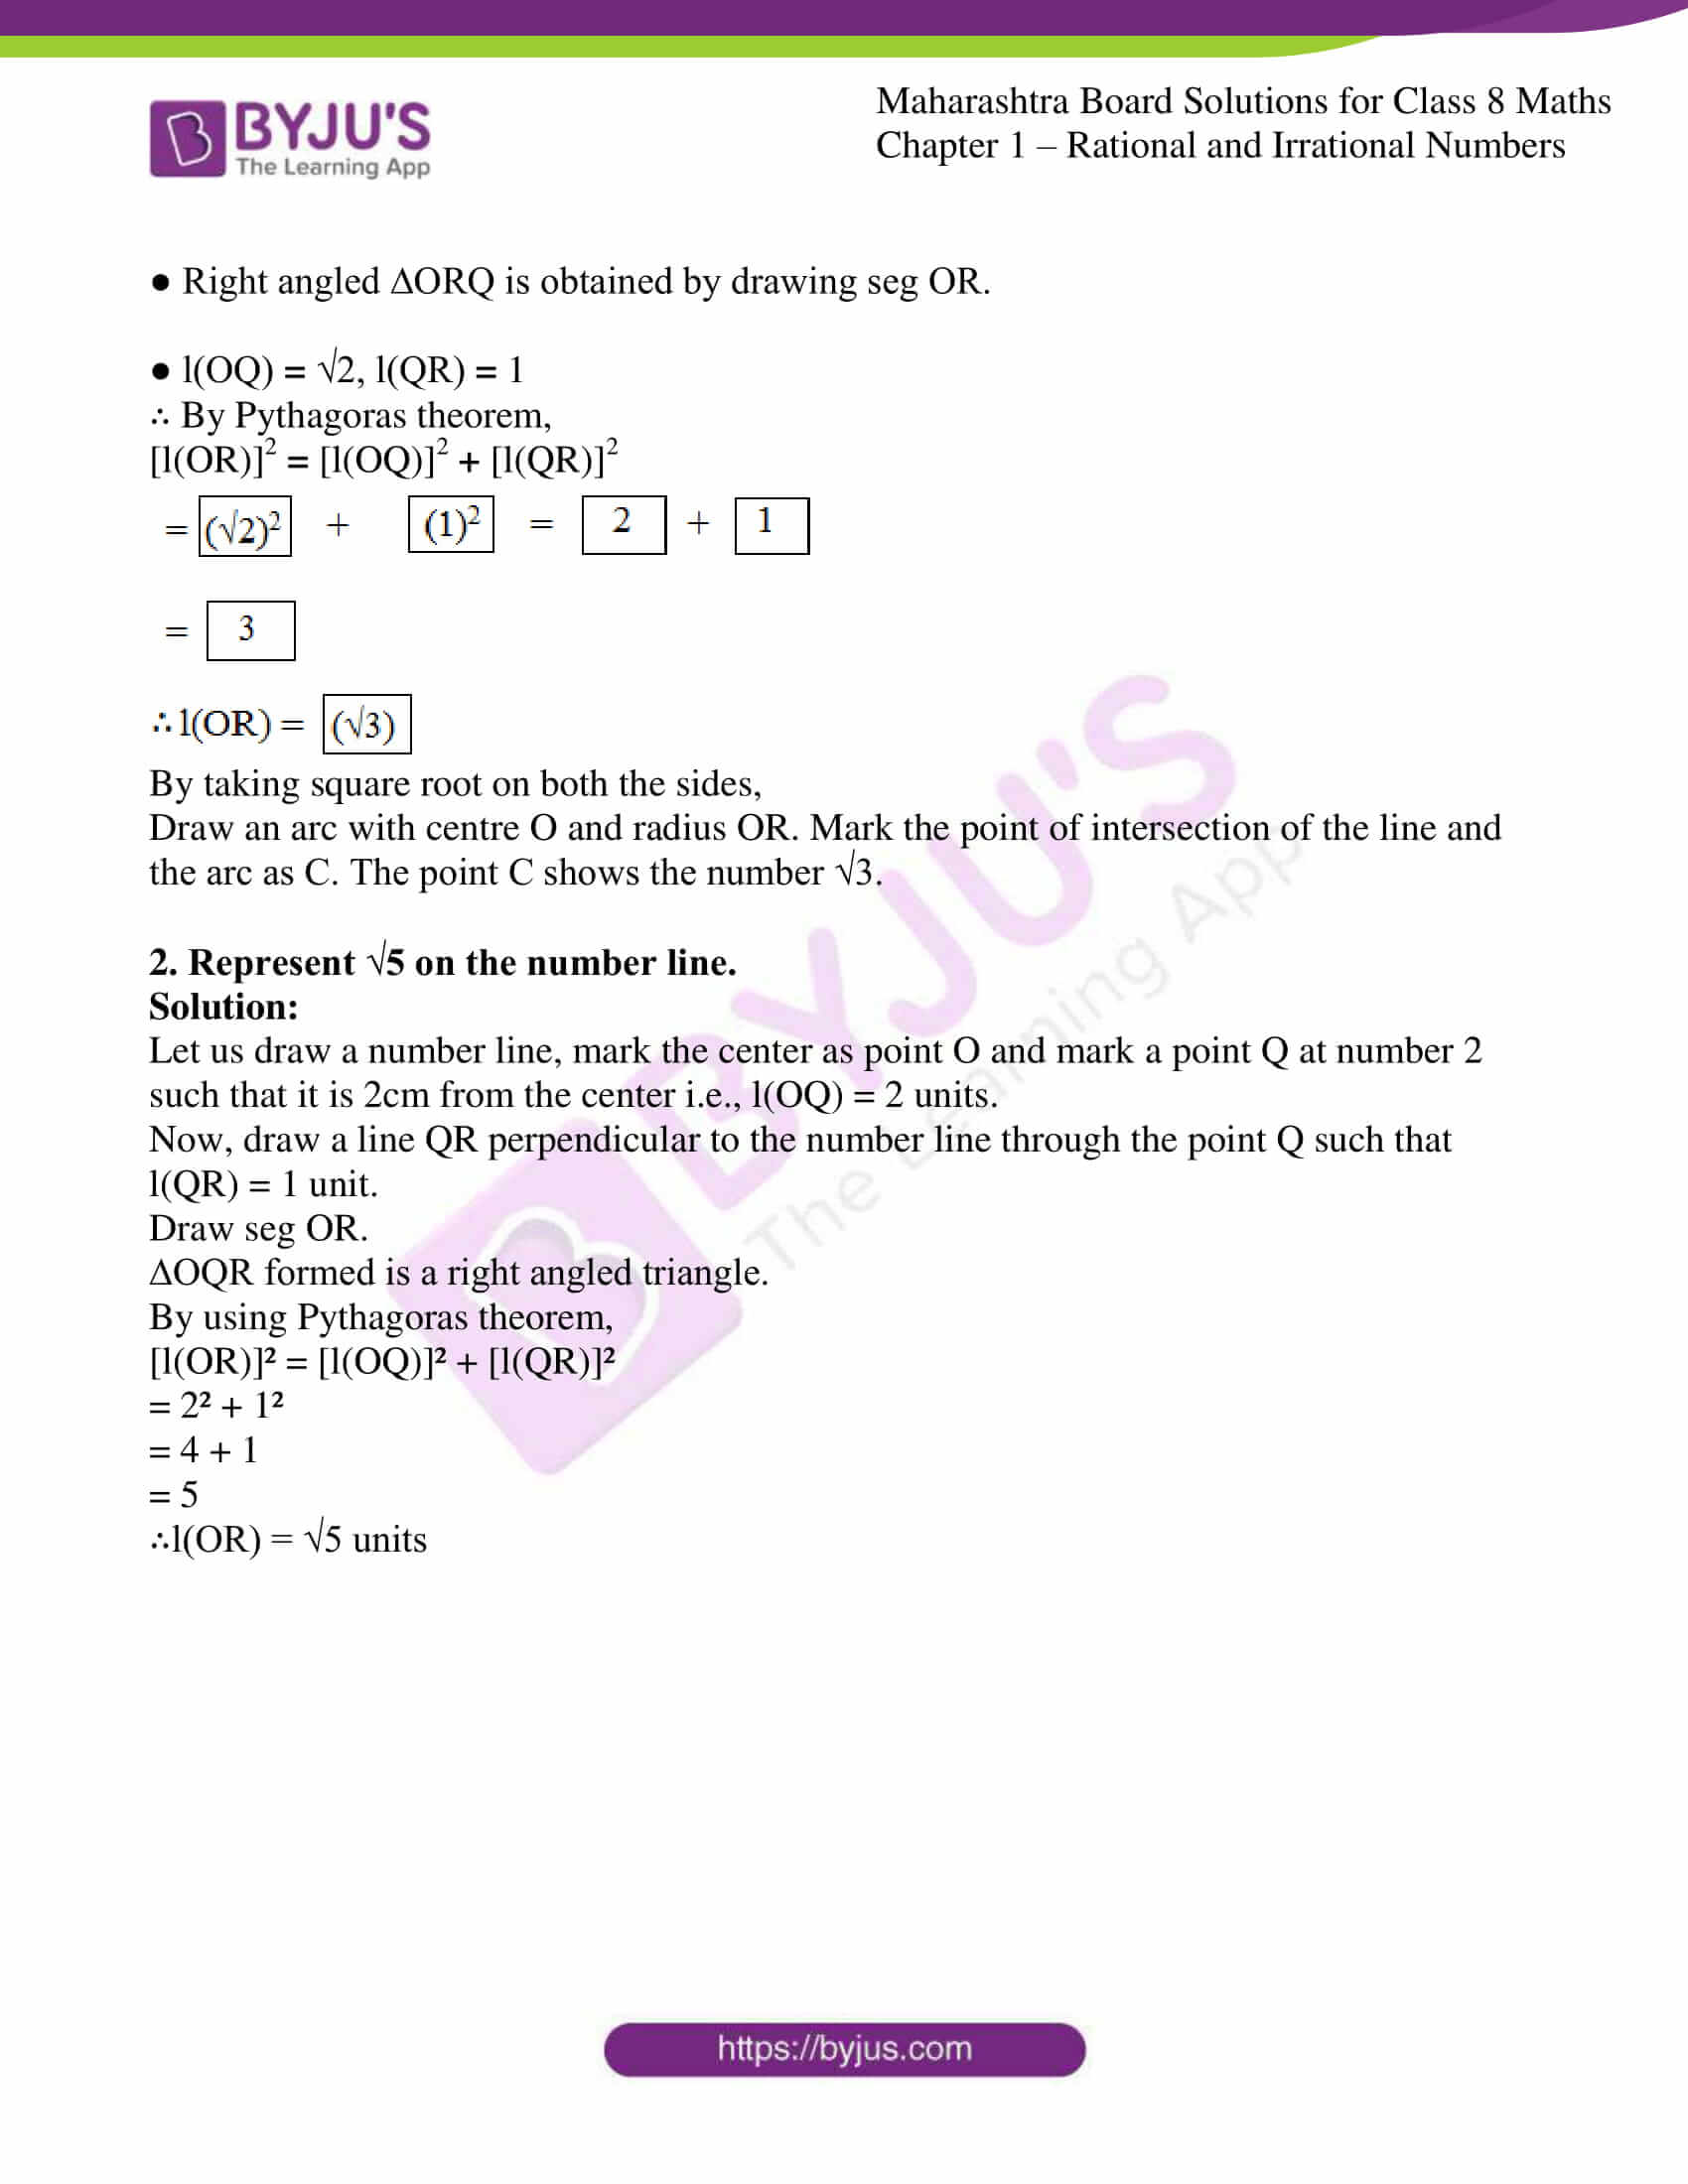 msbshse sol for class 8 maths chapter 1 11